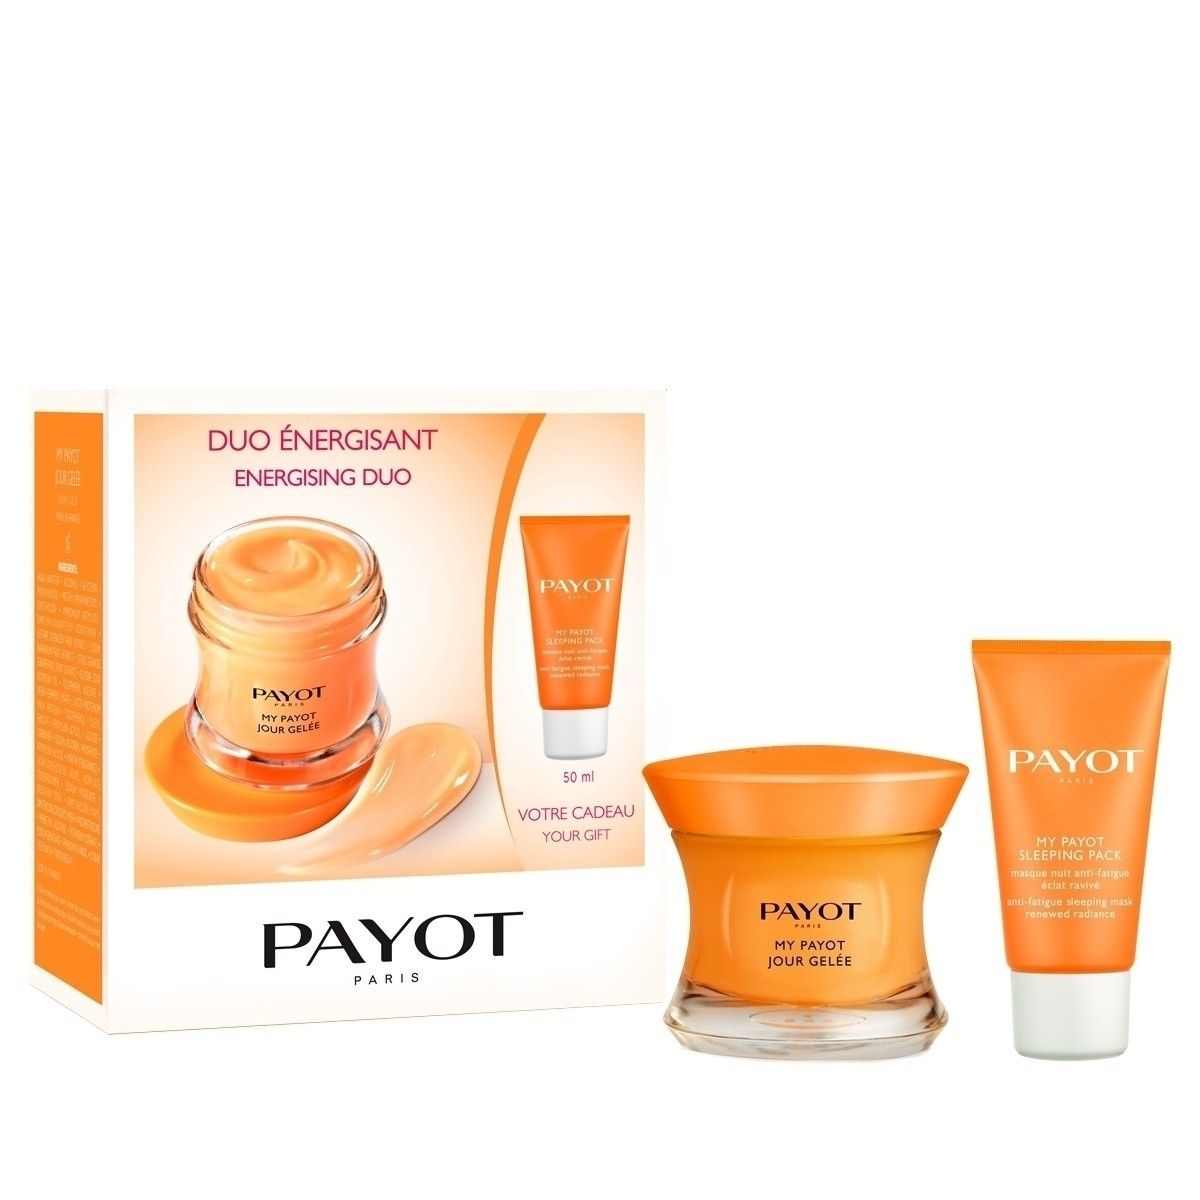 My Payot Duo Energisant Set